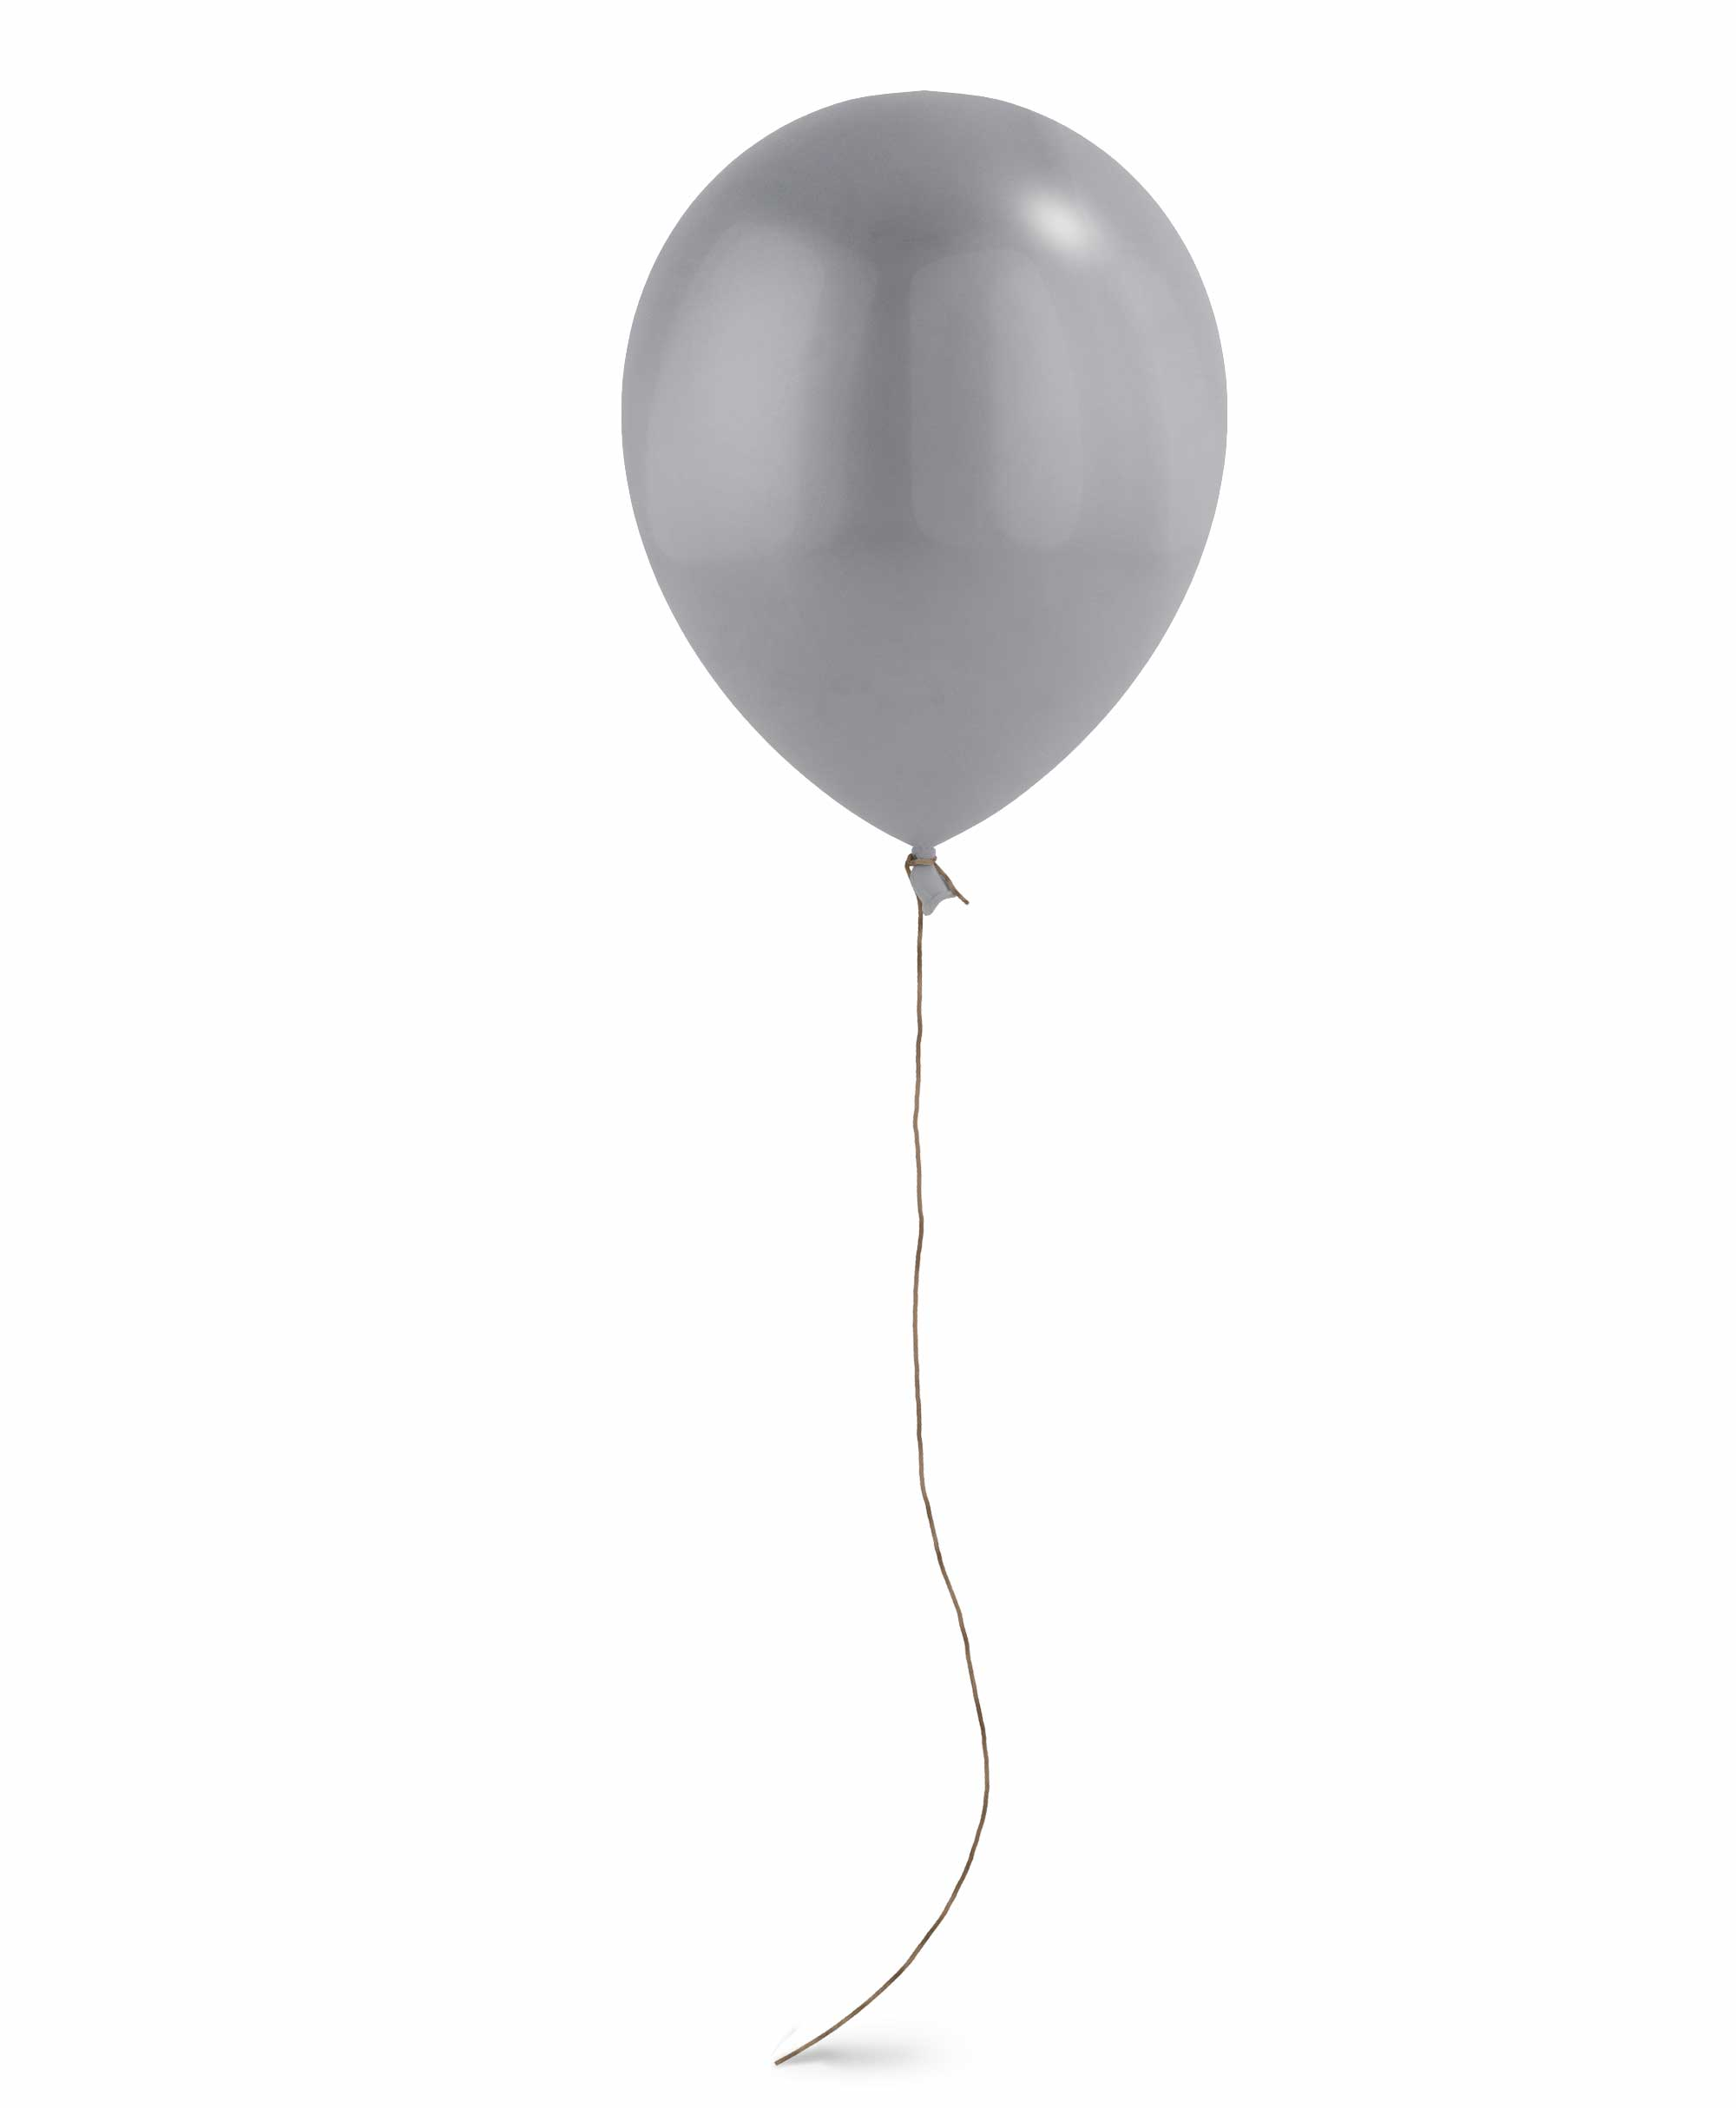 "Silver balloon 11"" - Gum nut Theme"